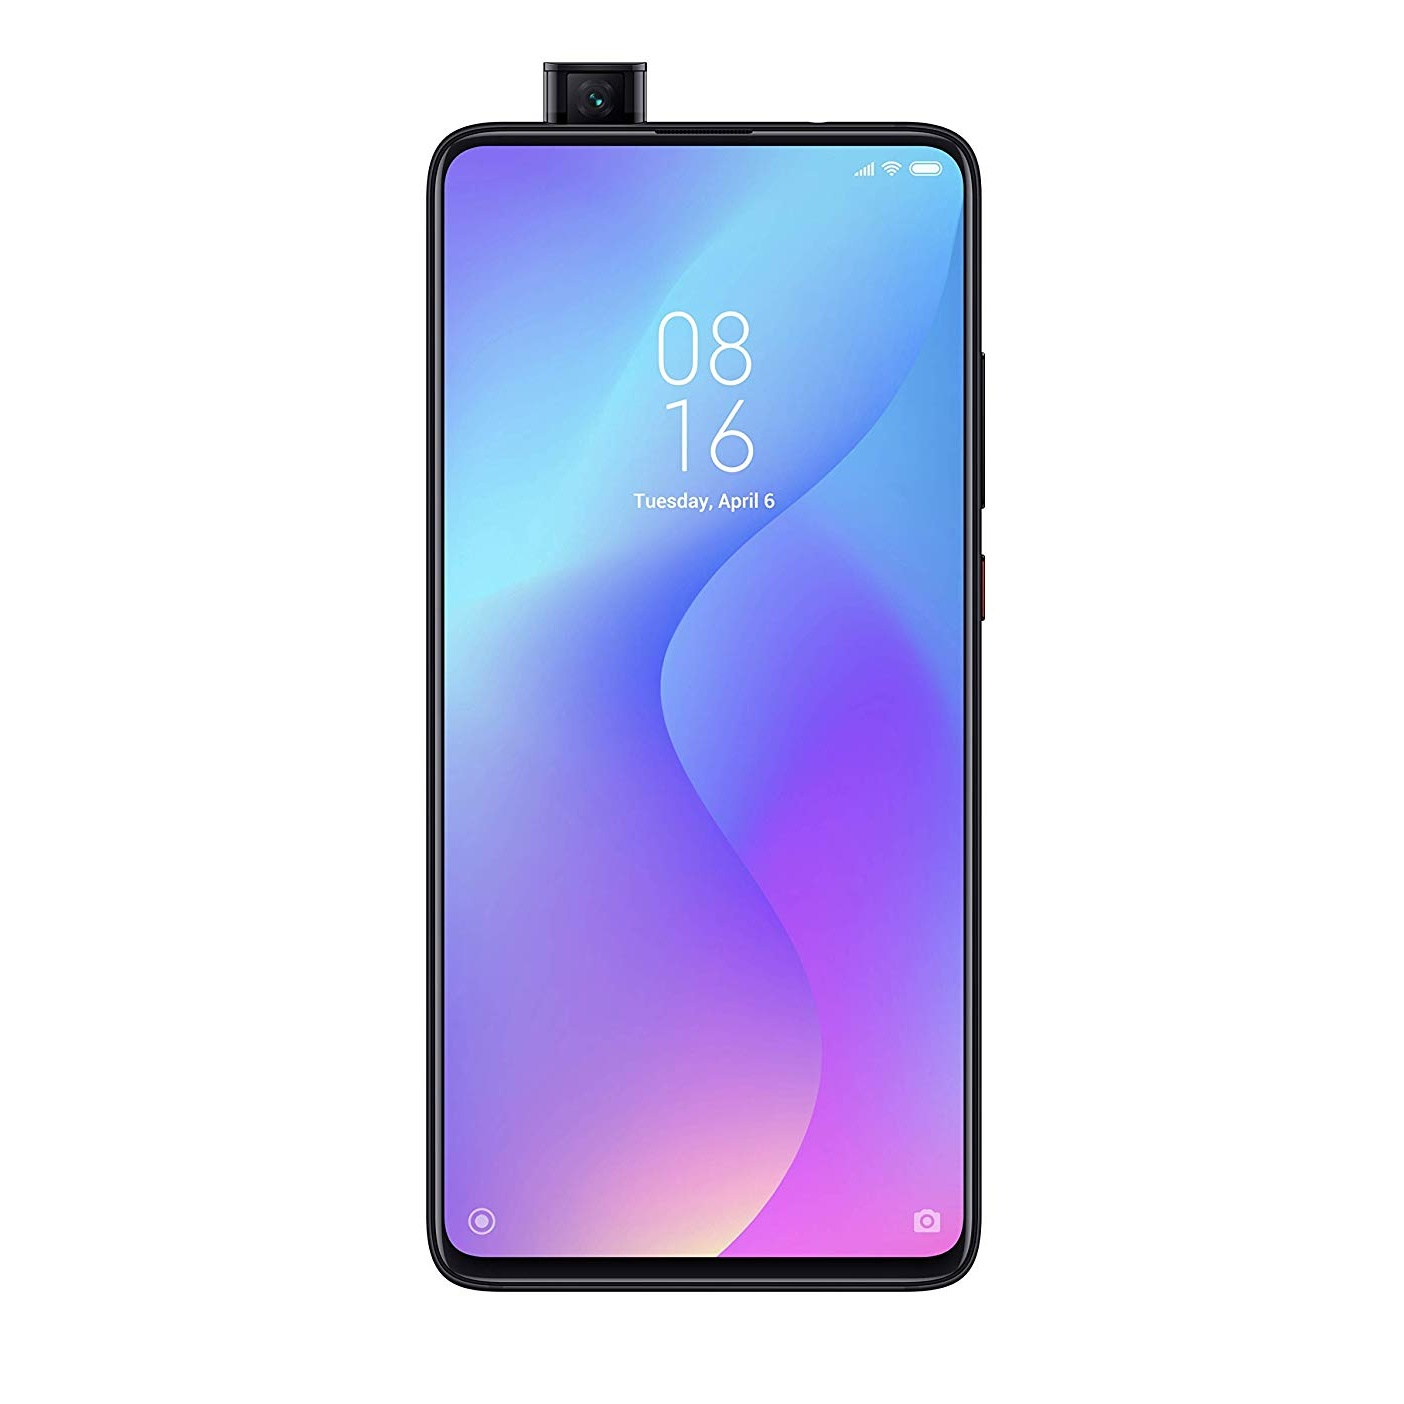 Image of Xiaomi Mi 9T 6GB/128GB Dual Sim - Carbon Black (International Ver.)